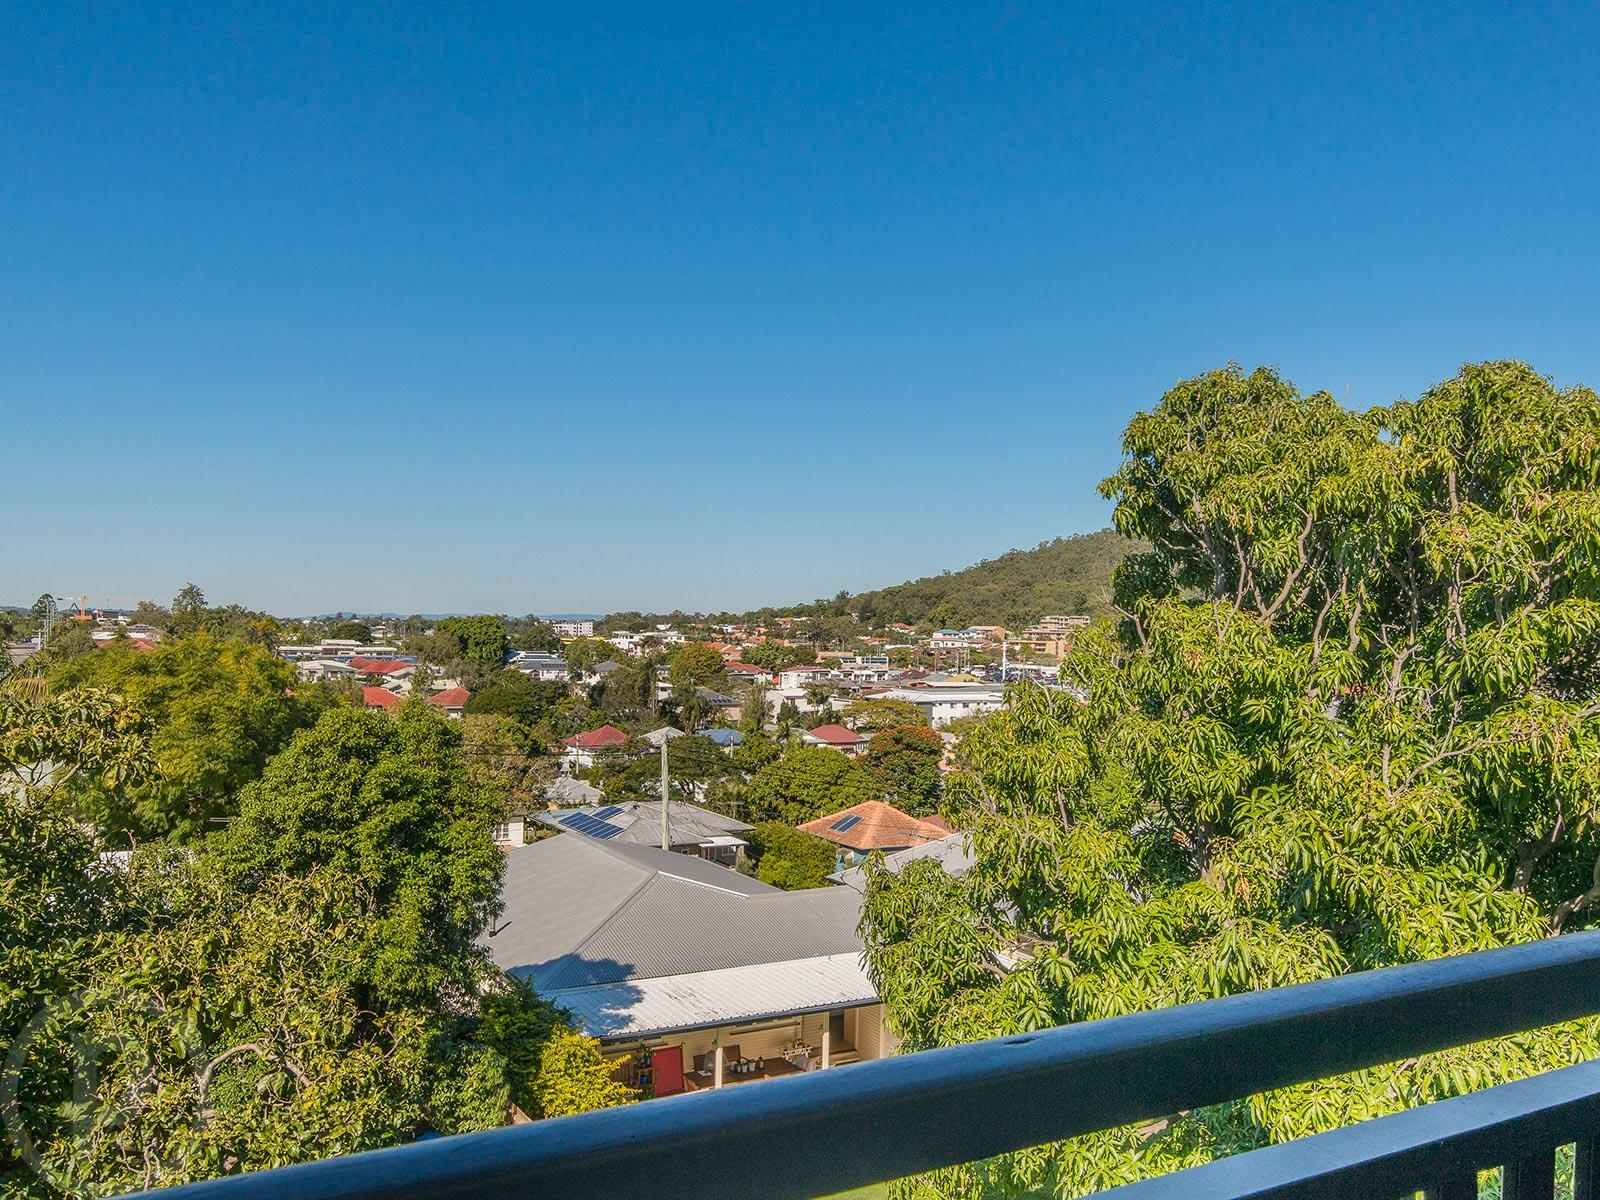 Commercial real estate for sale in mount gravatt east qld 4122 pg 3 - Commercial Real Estate For Sale In Mount Gravatt East Qld 4122 Pg 3 39